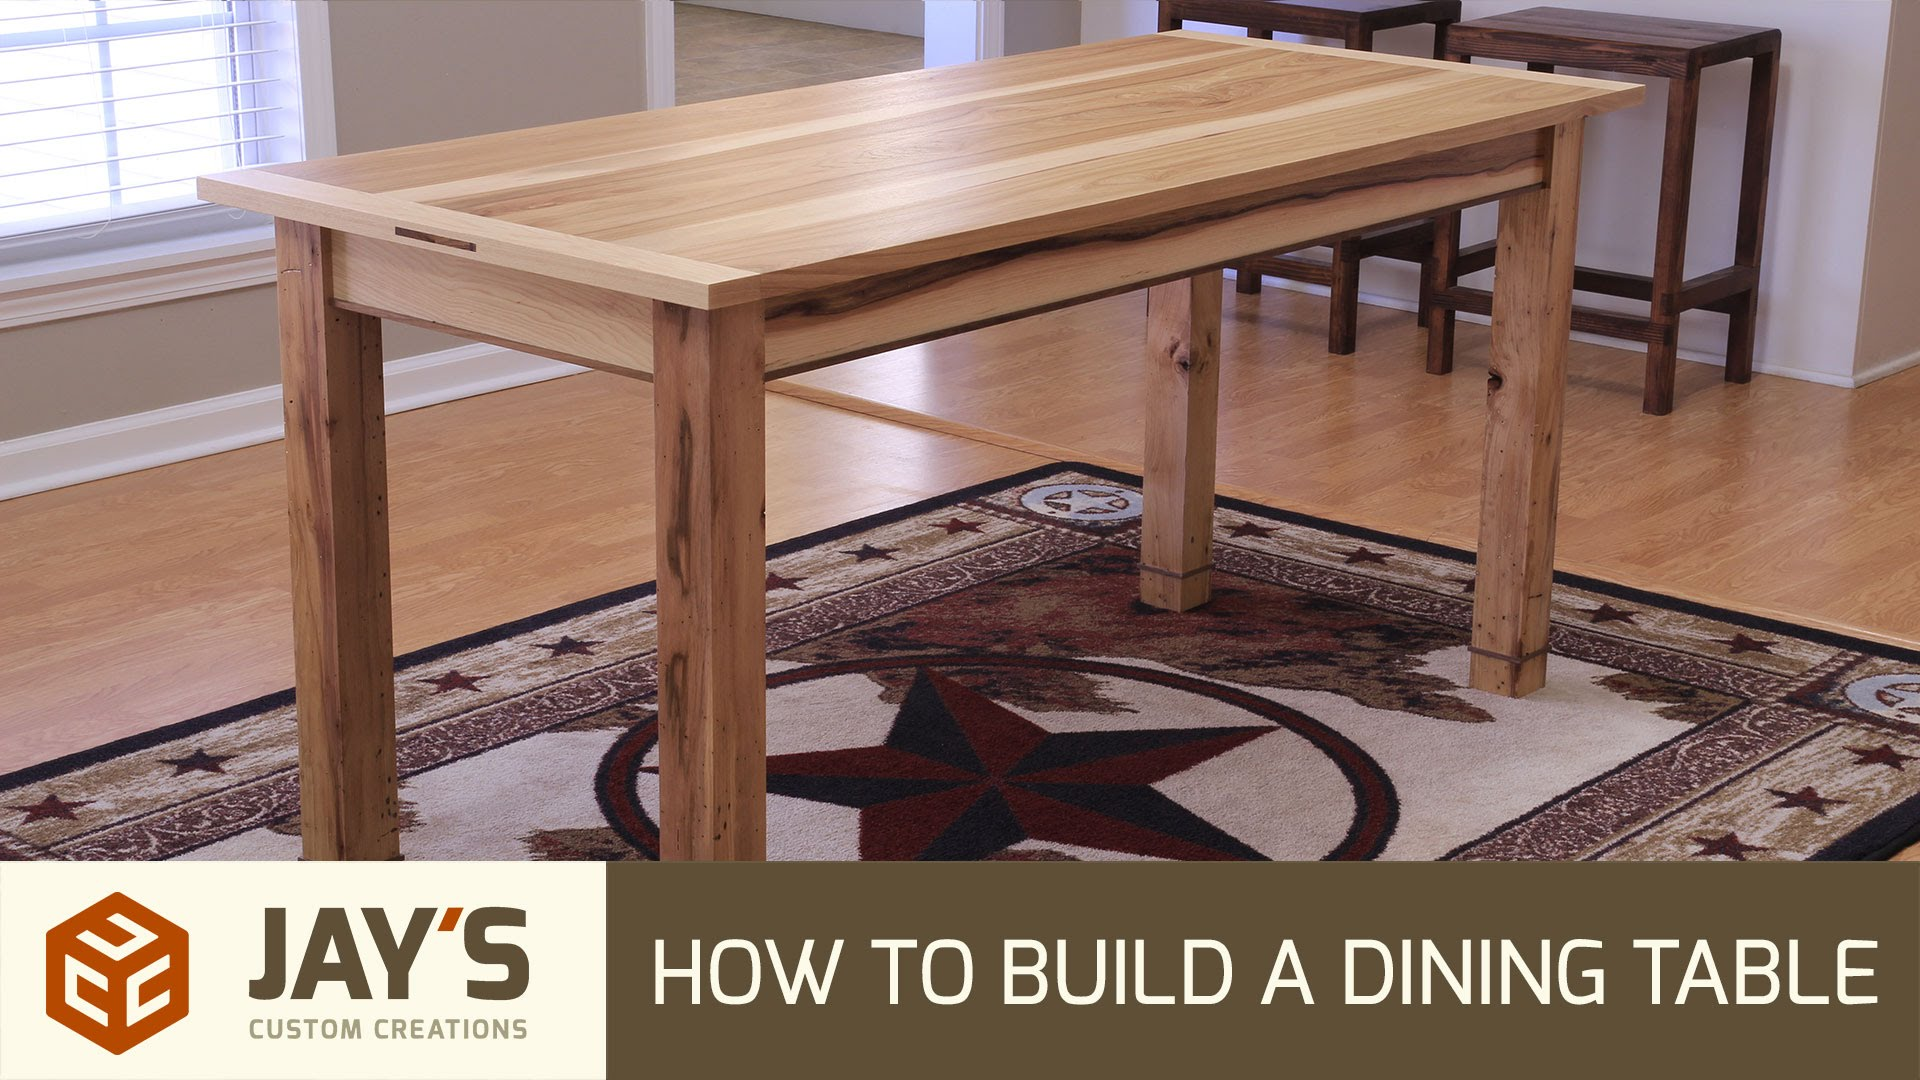 How To Build A Dining Table | Jays Custom Creations